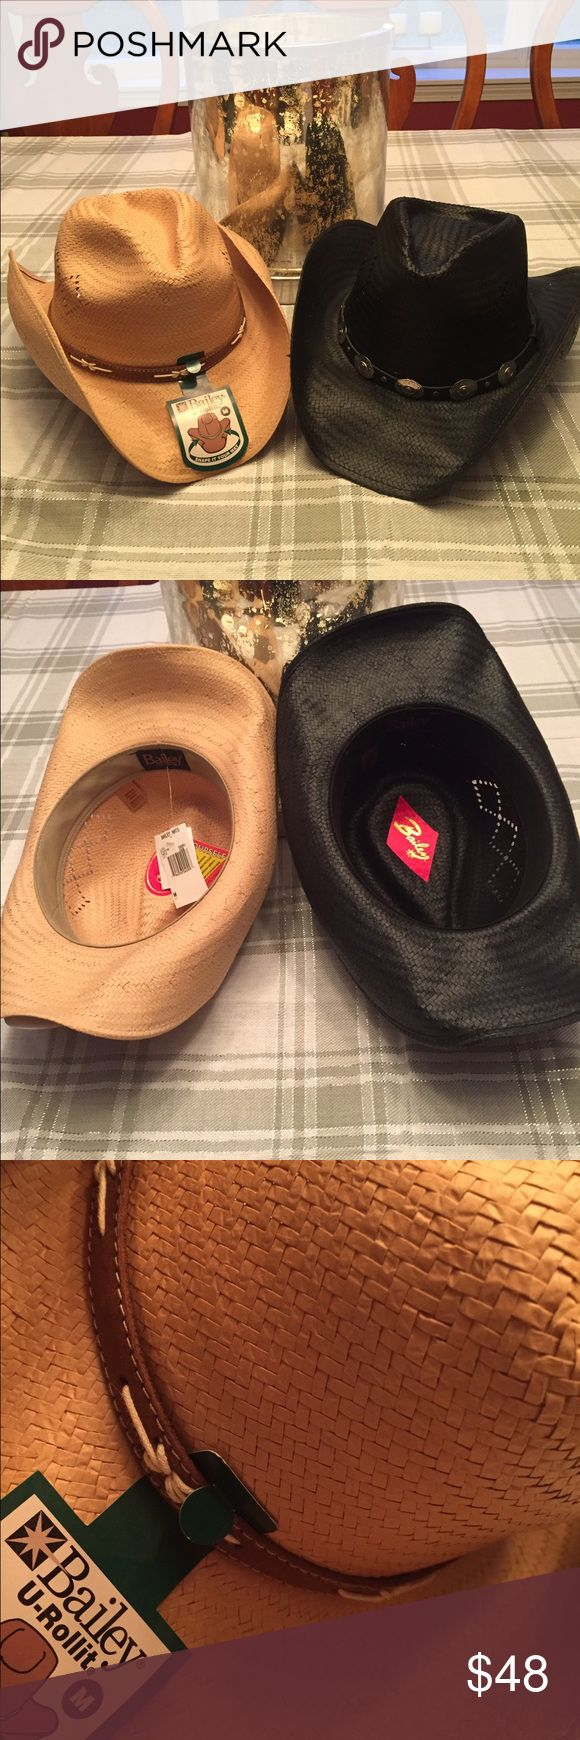 New western bailey hats M Beautiful and comfortable Bailey hats one w/ tags available in tan or black bailey Accessories Hats